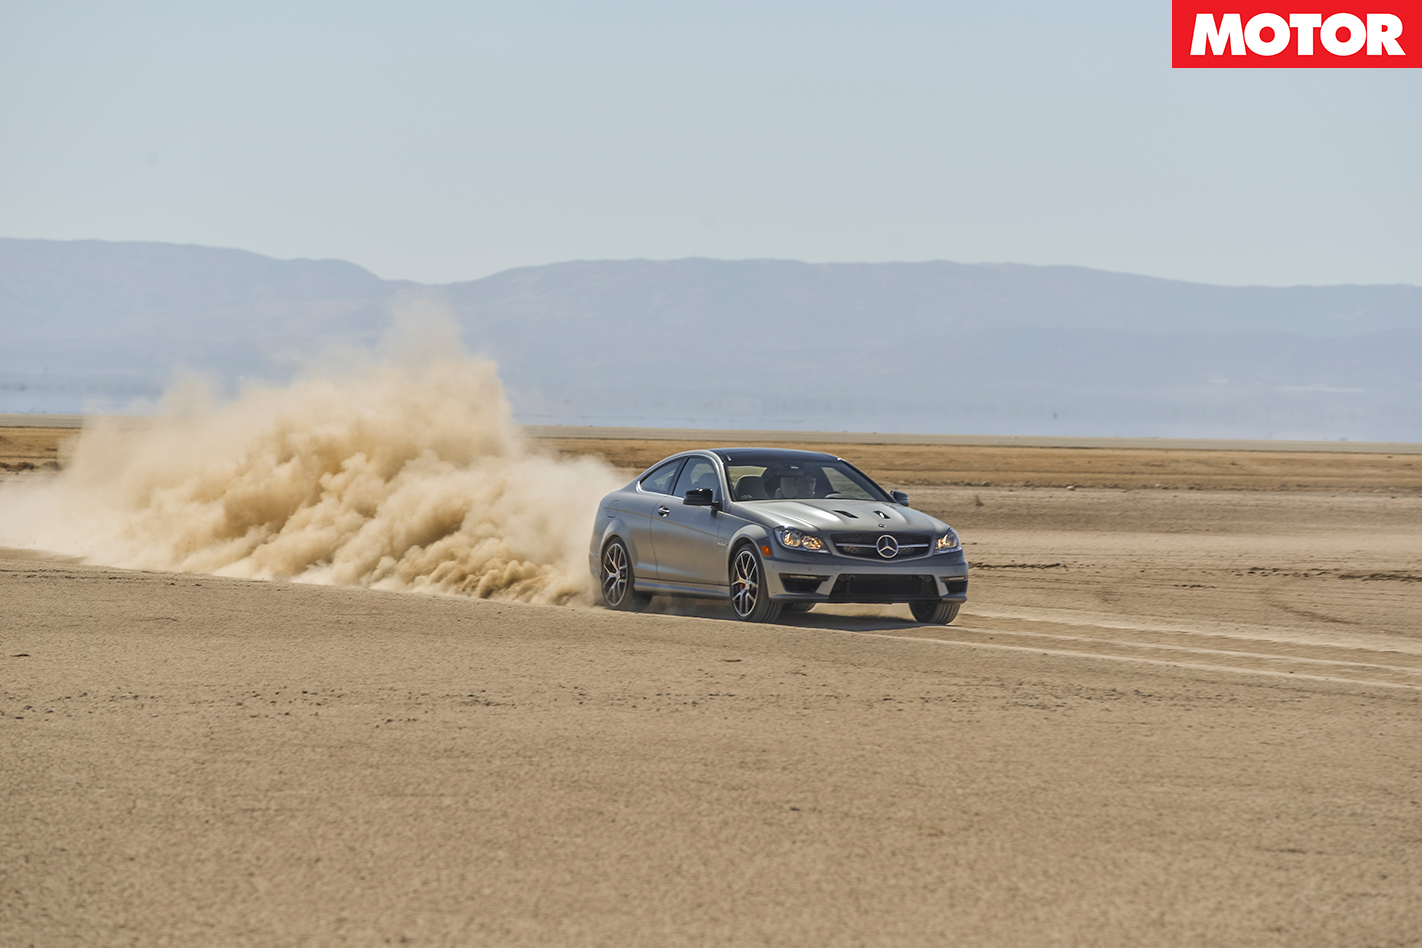 Mercedes-AMG C63 507 in the Desert